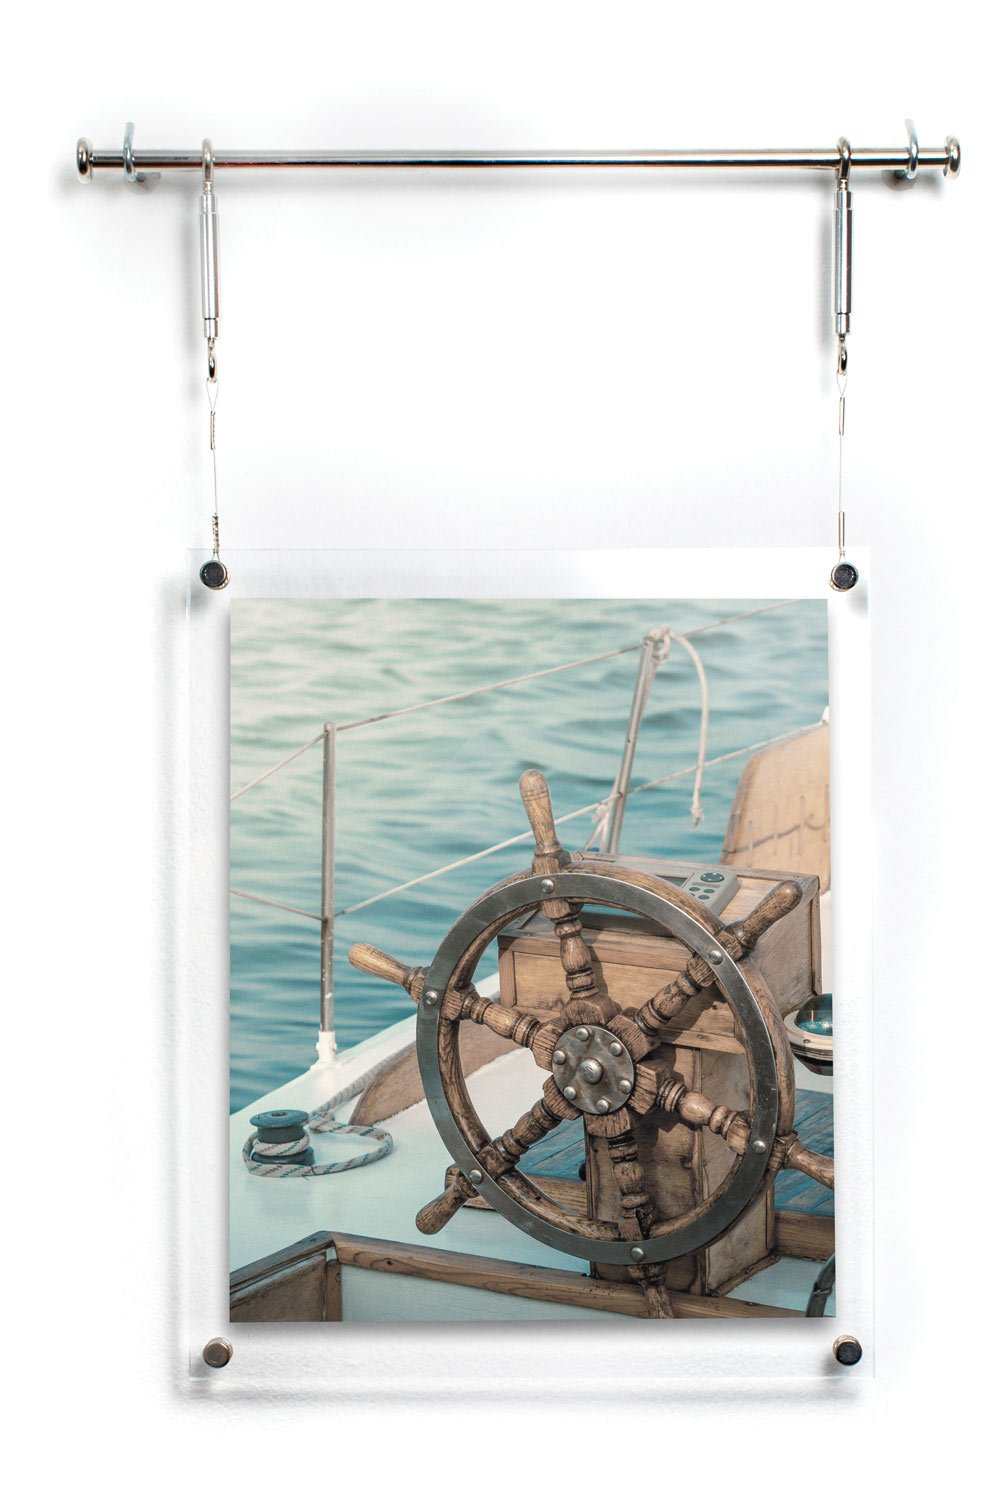 HIGHWIRE Picture Frame Display, Hanging / Wall Mounted Photo (8x10''), Acrylic, Steel & Aluminum by HIGHWIRE